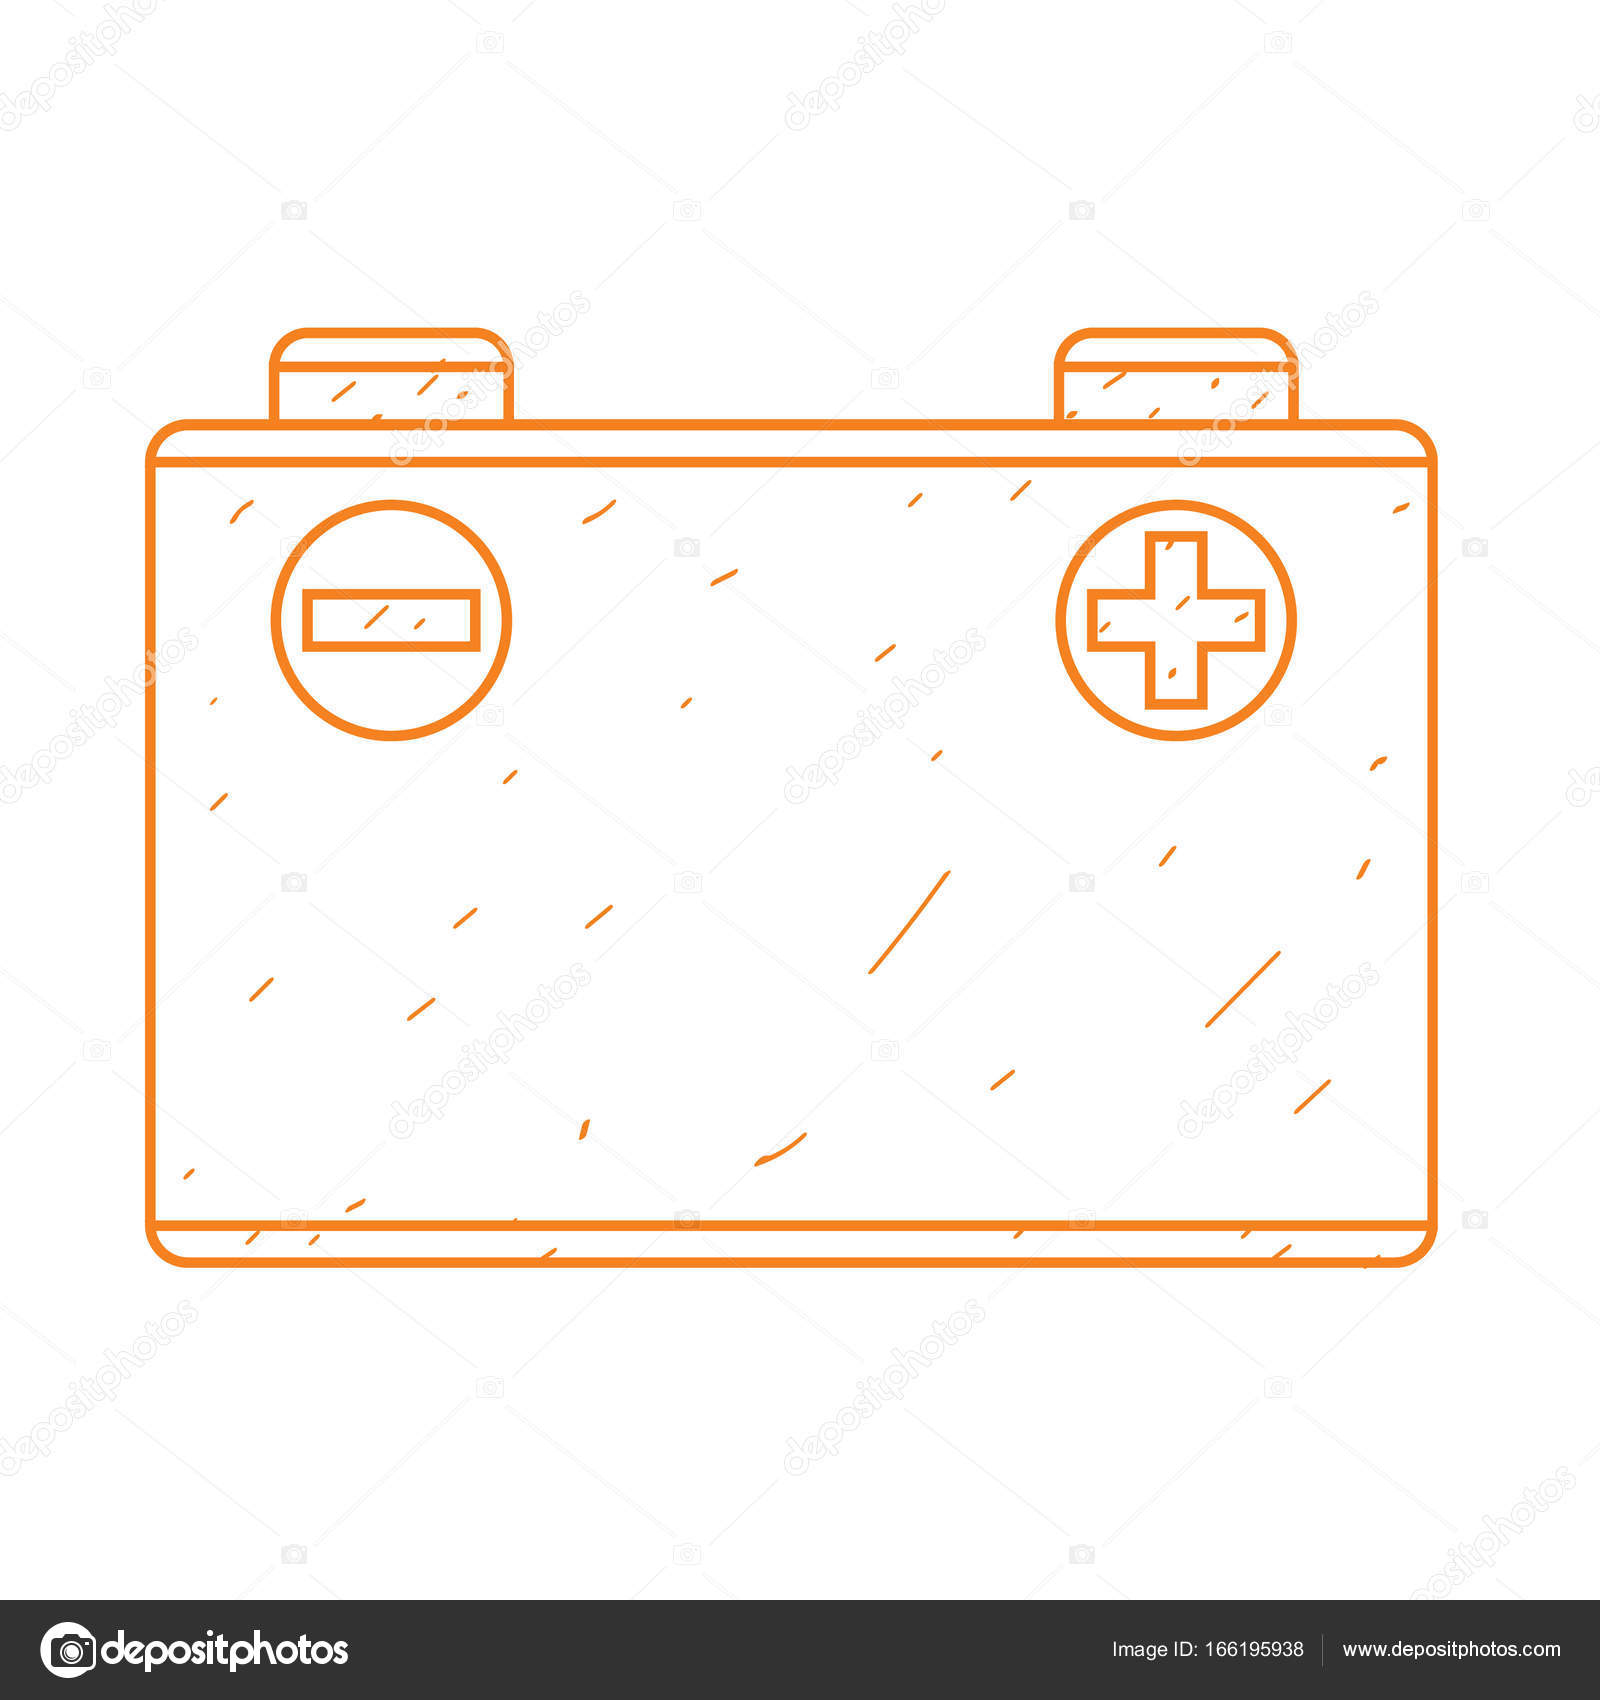 Battery clipart outline. Car drawing at getdrawings